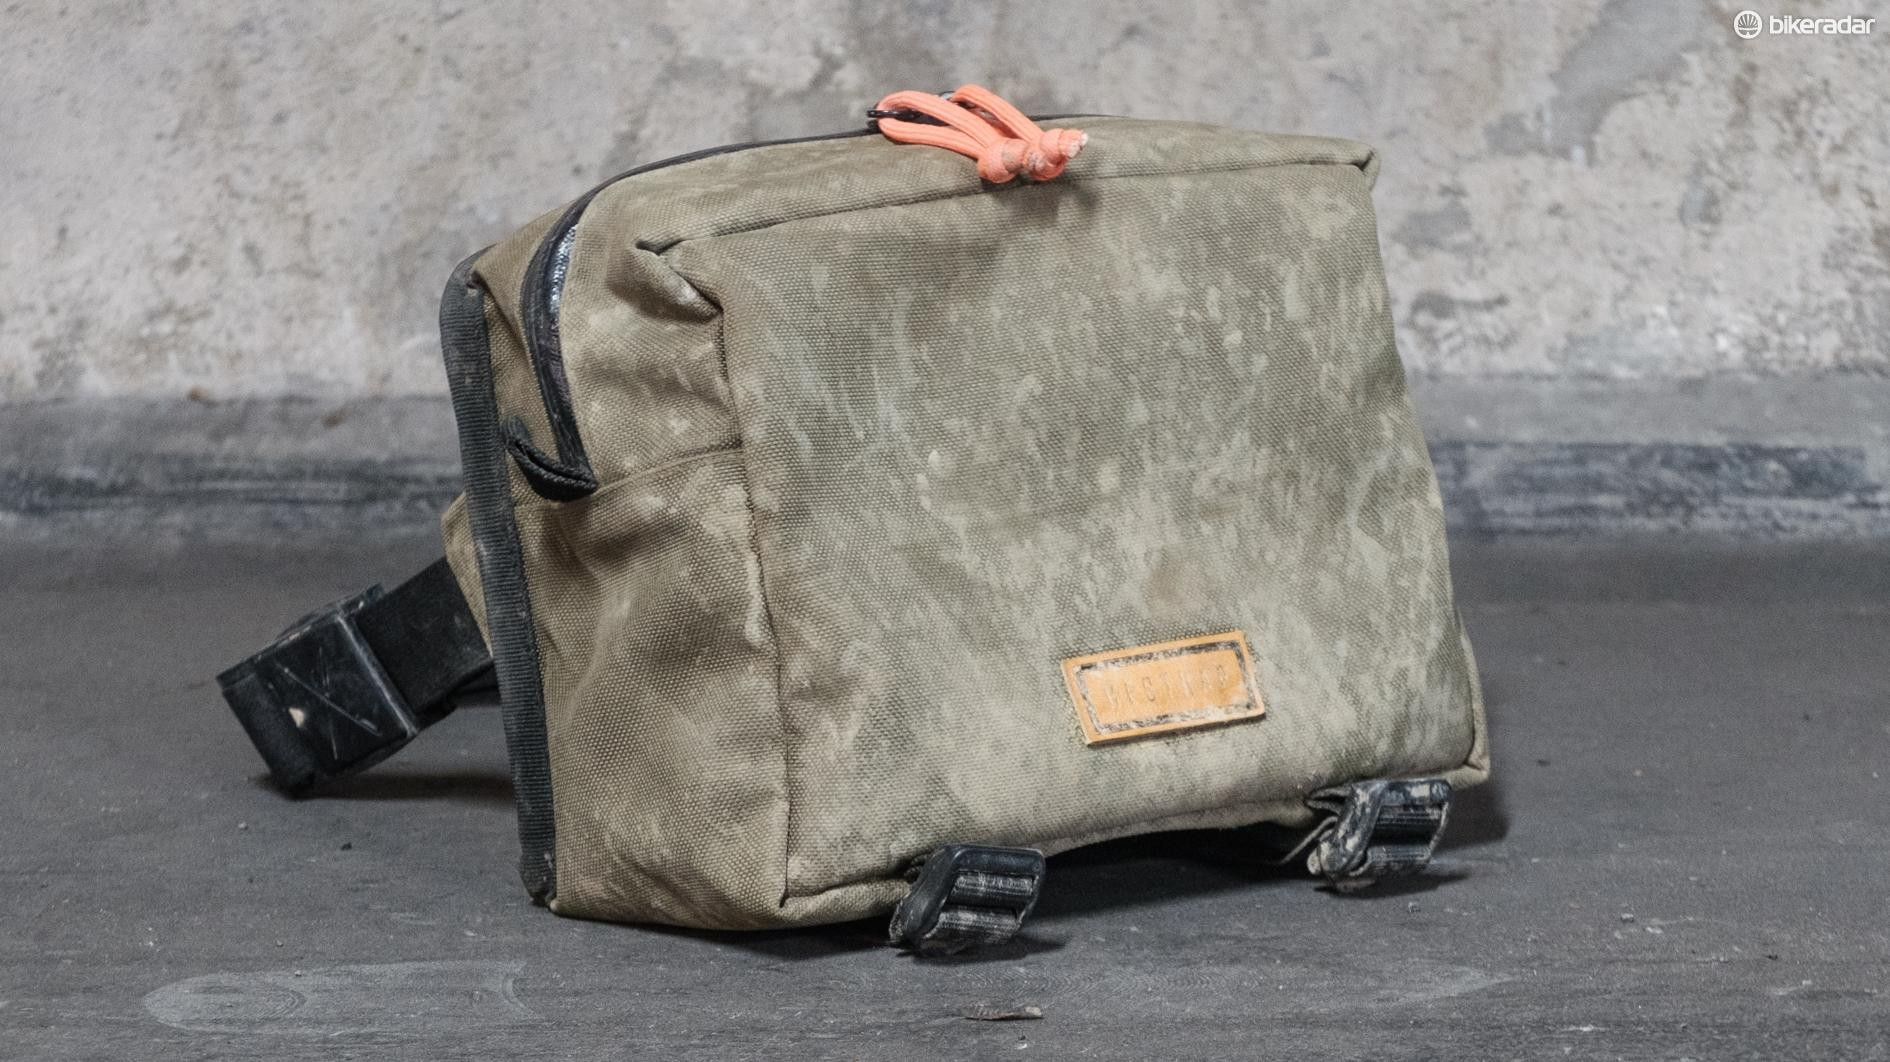 This bum bag from Restrap is pleasingly simple